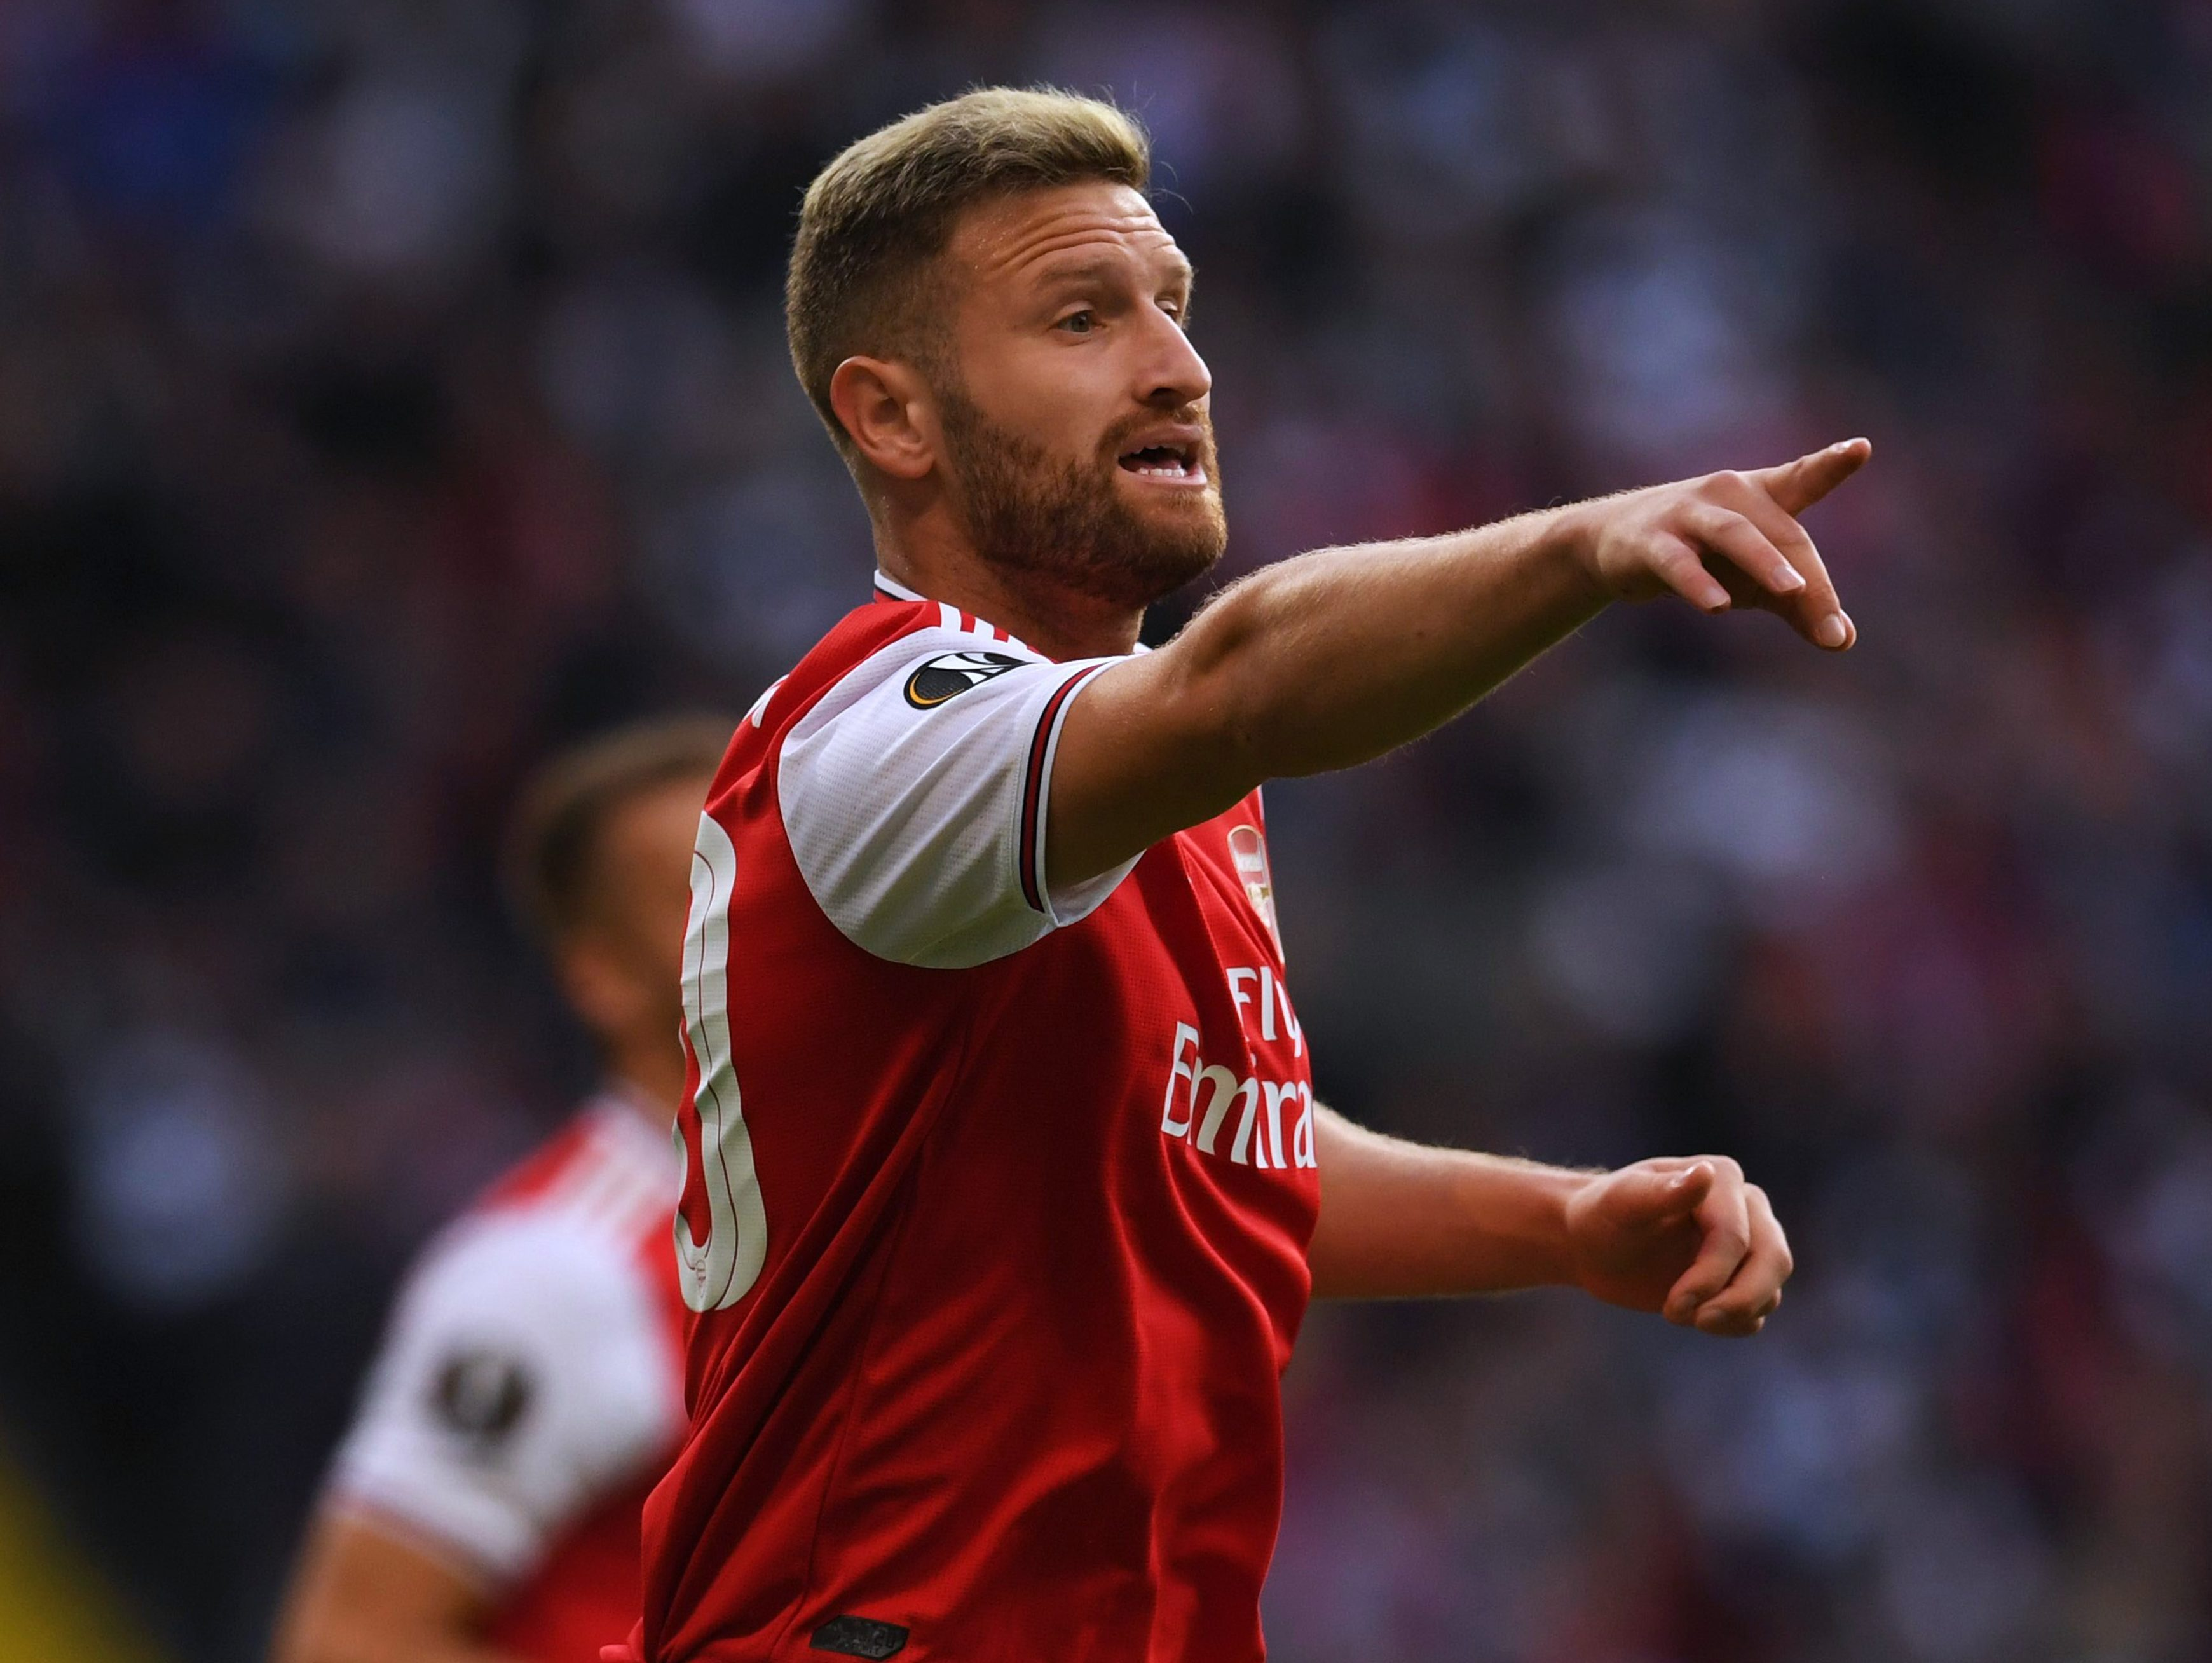 Shkodran Mustafi admitted he would consider leaving Arsenal but will not force through a move away